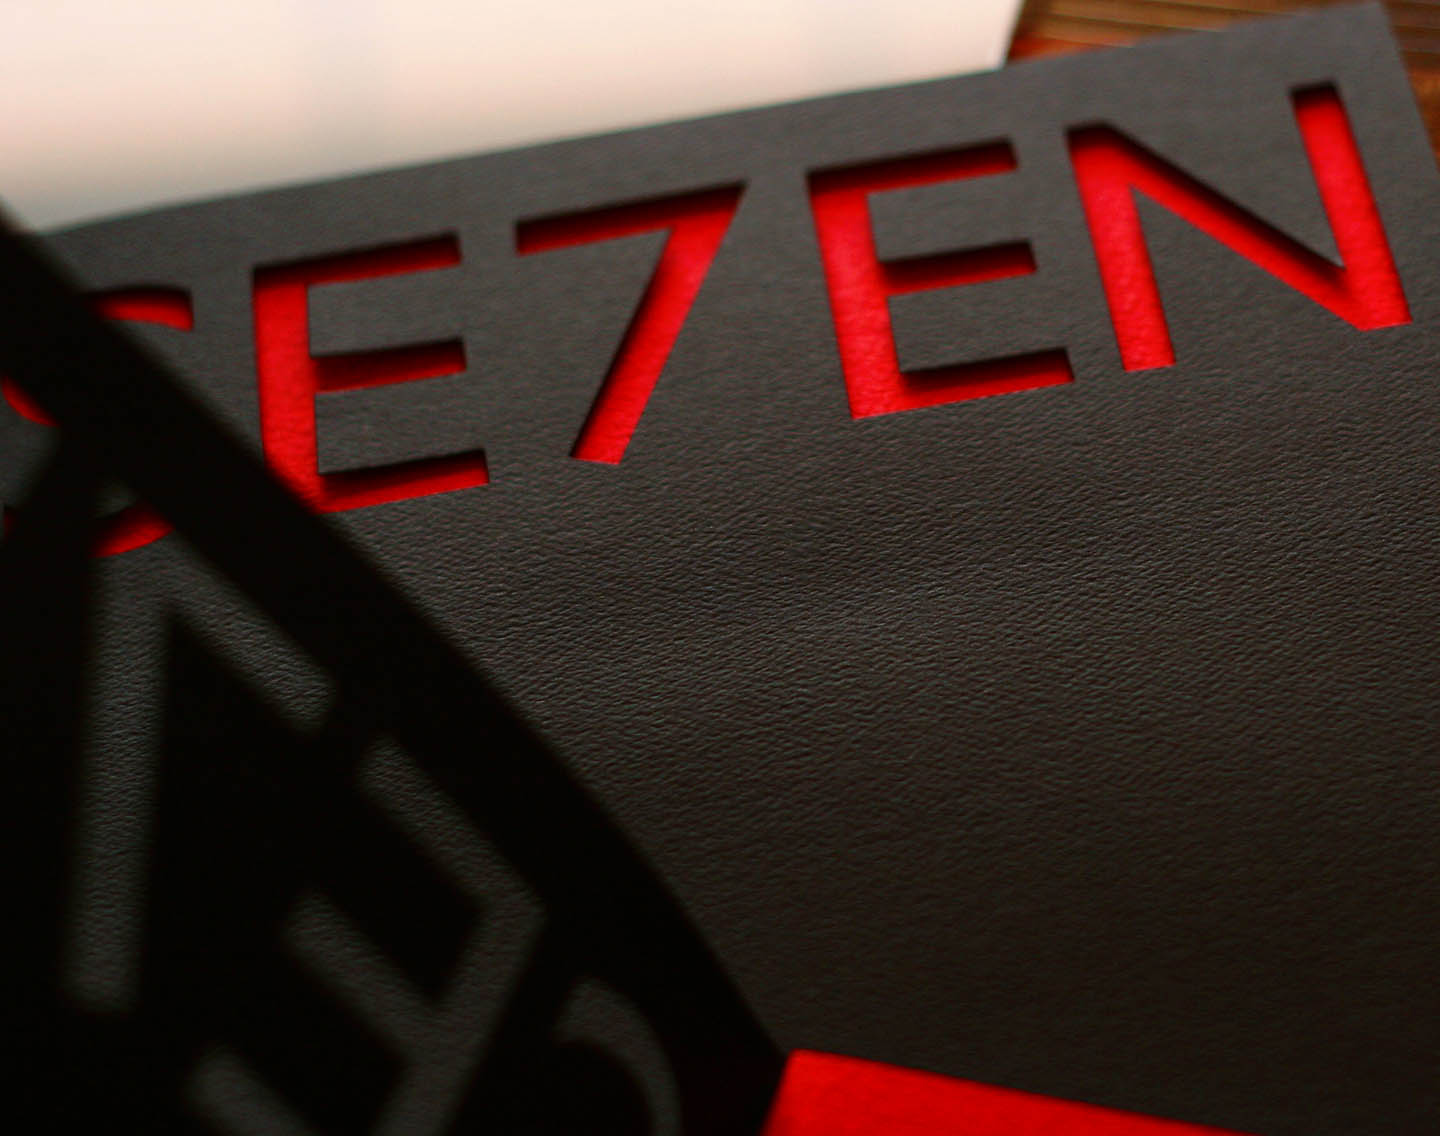 A cutout of the word SE7EN on black cover of magazine with red interior